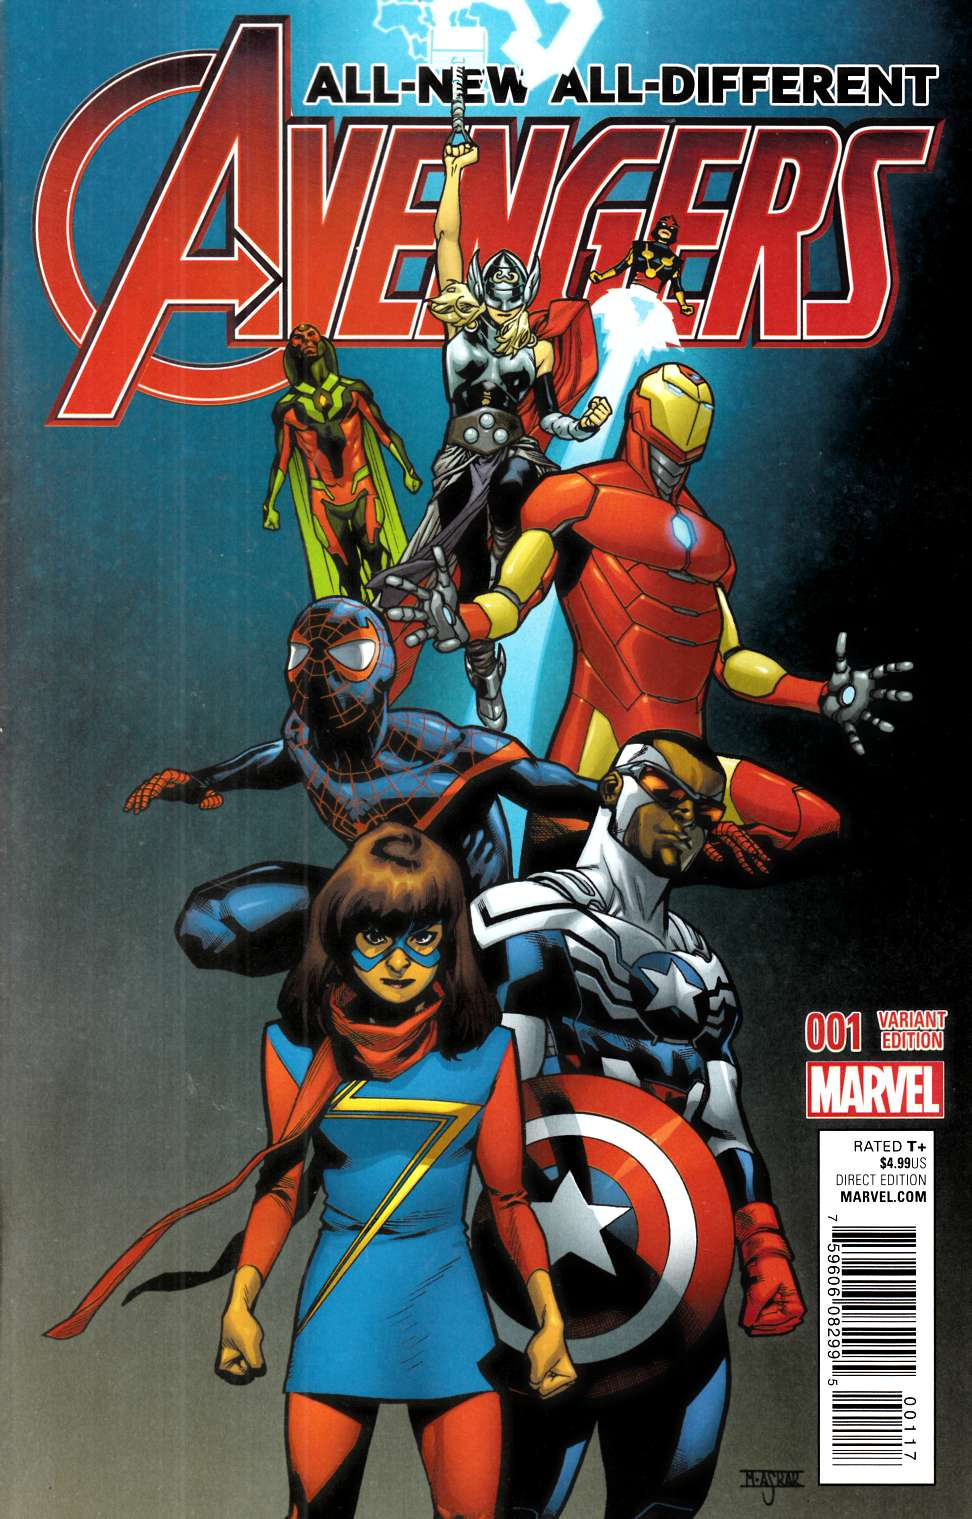 All New All Different Avengers Vol 1 2: Back Issues / Marvel BackIssues / All New All Different